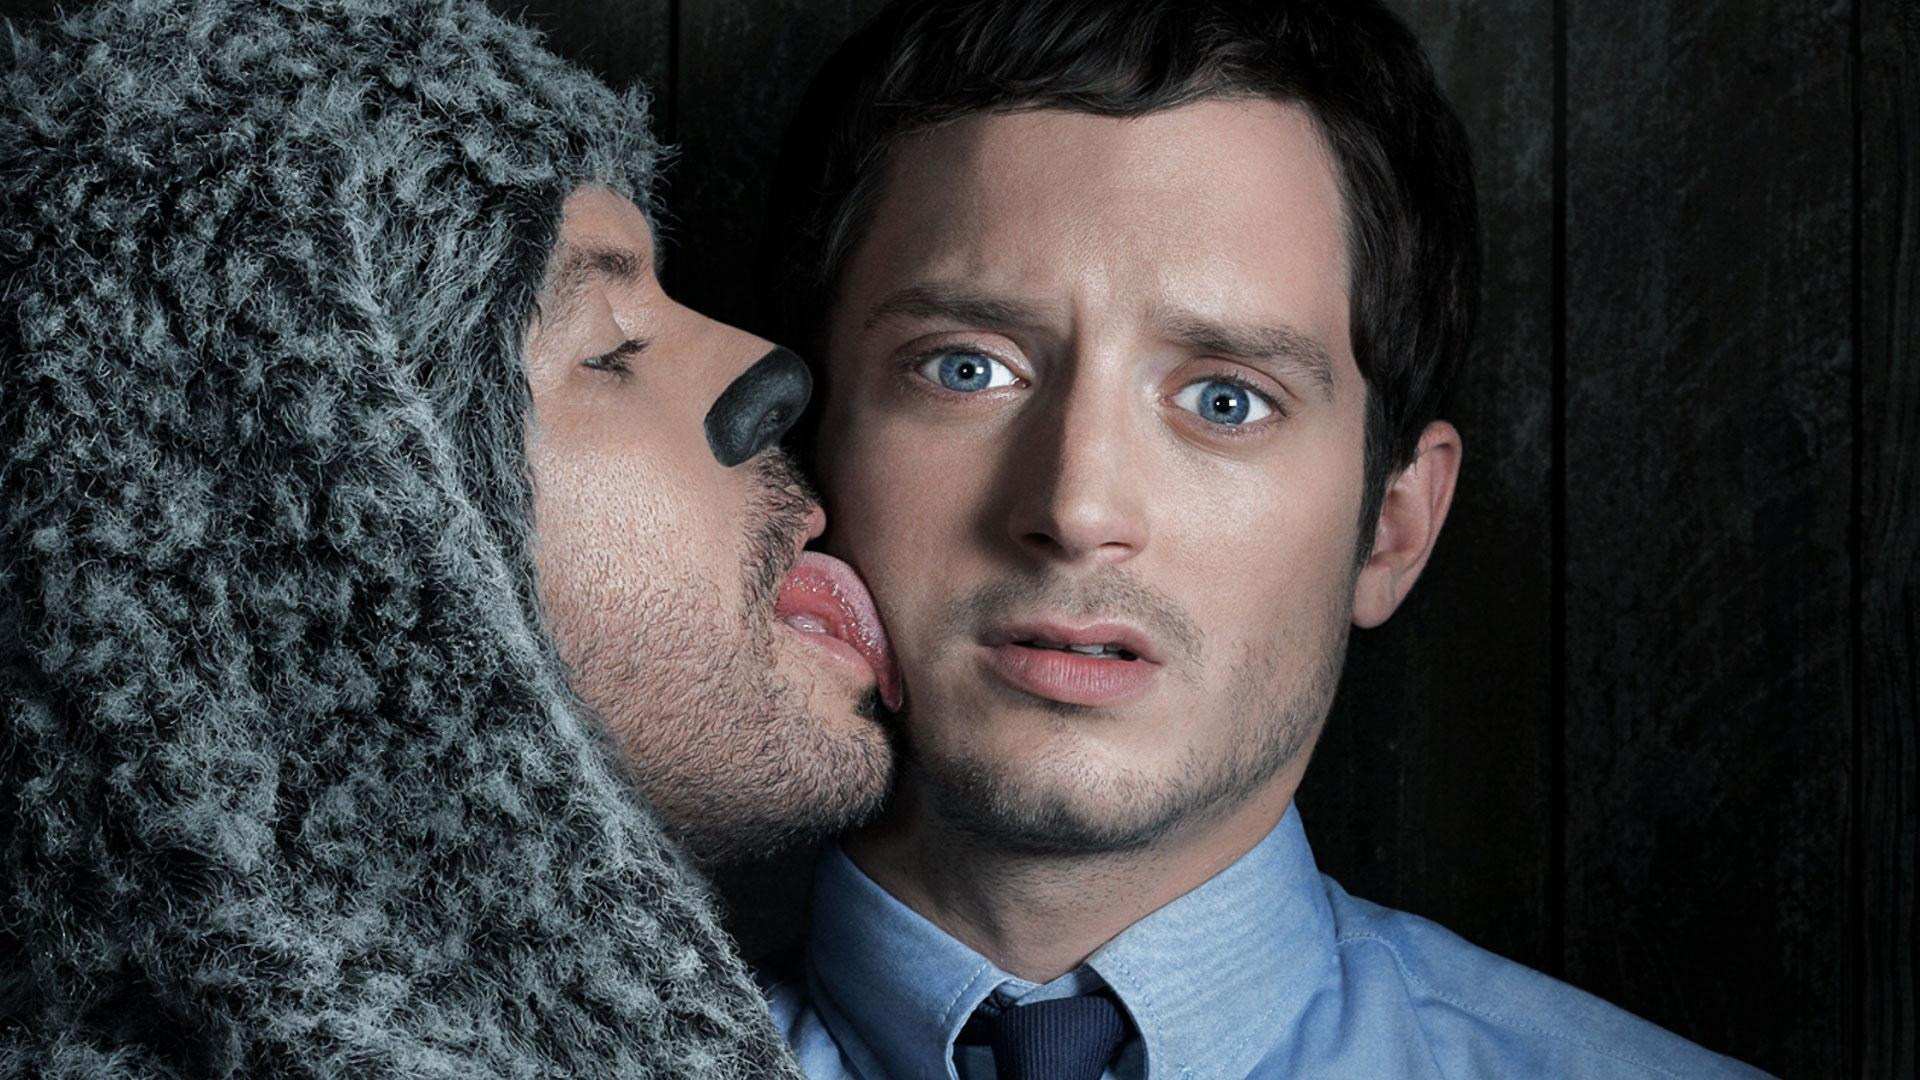 Download wallpapers 1920x1080 wilfred, jason gann, elijah wood, ryan